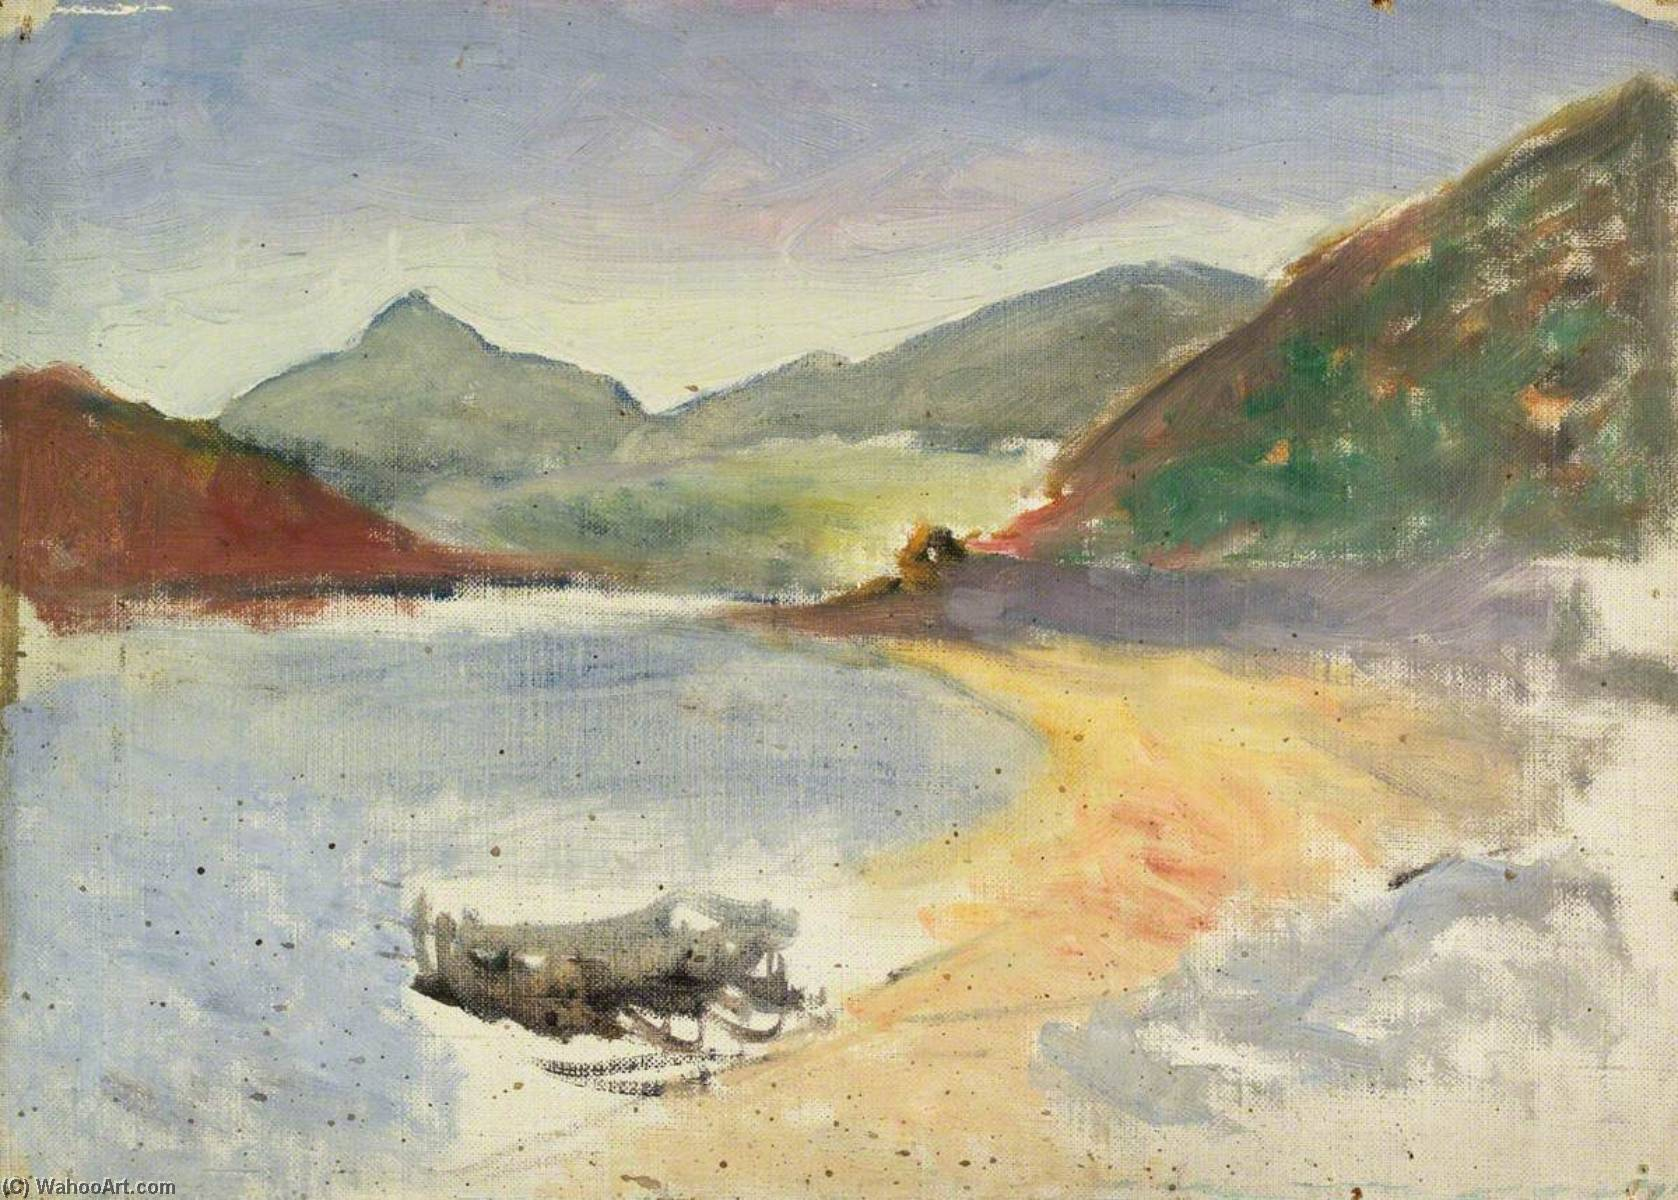 Lake and Mountains, 1920 by John Kelt Edwards | Art Reproductions John Kelt Edwards | ArtsDot.com